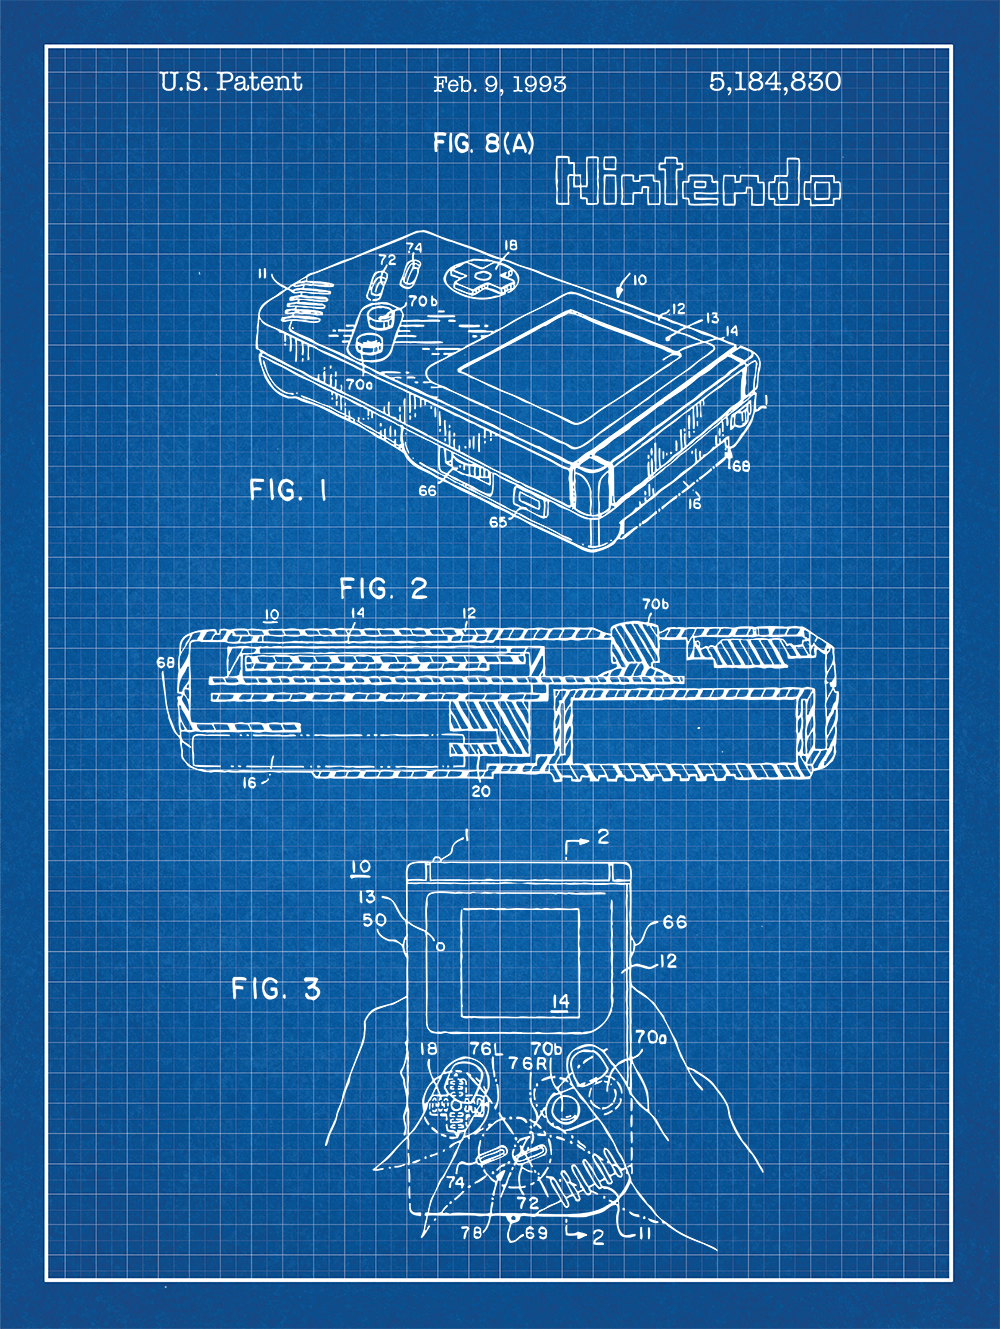 Nintendo game boy screen print handheld video game gameboy patent nintendo gameboy patent print on blue graph paper background malvernweather Image collections